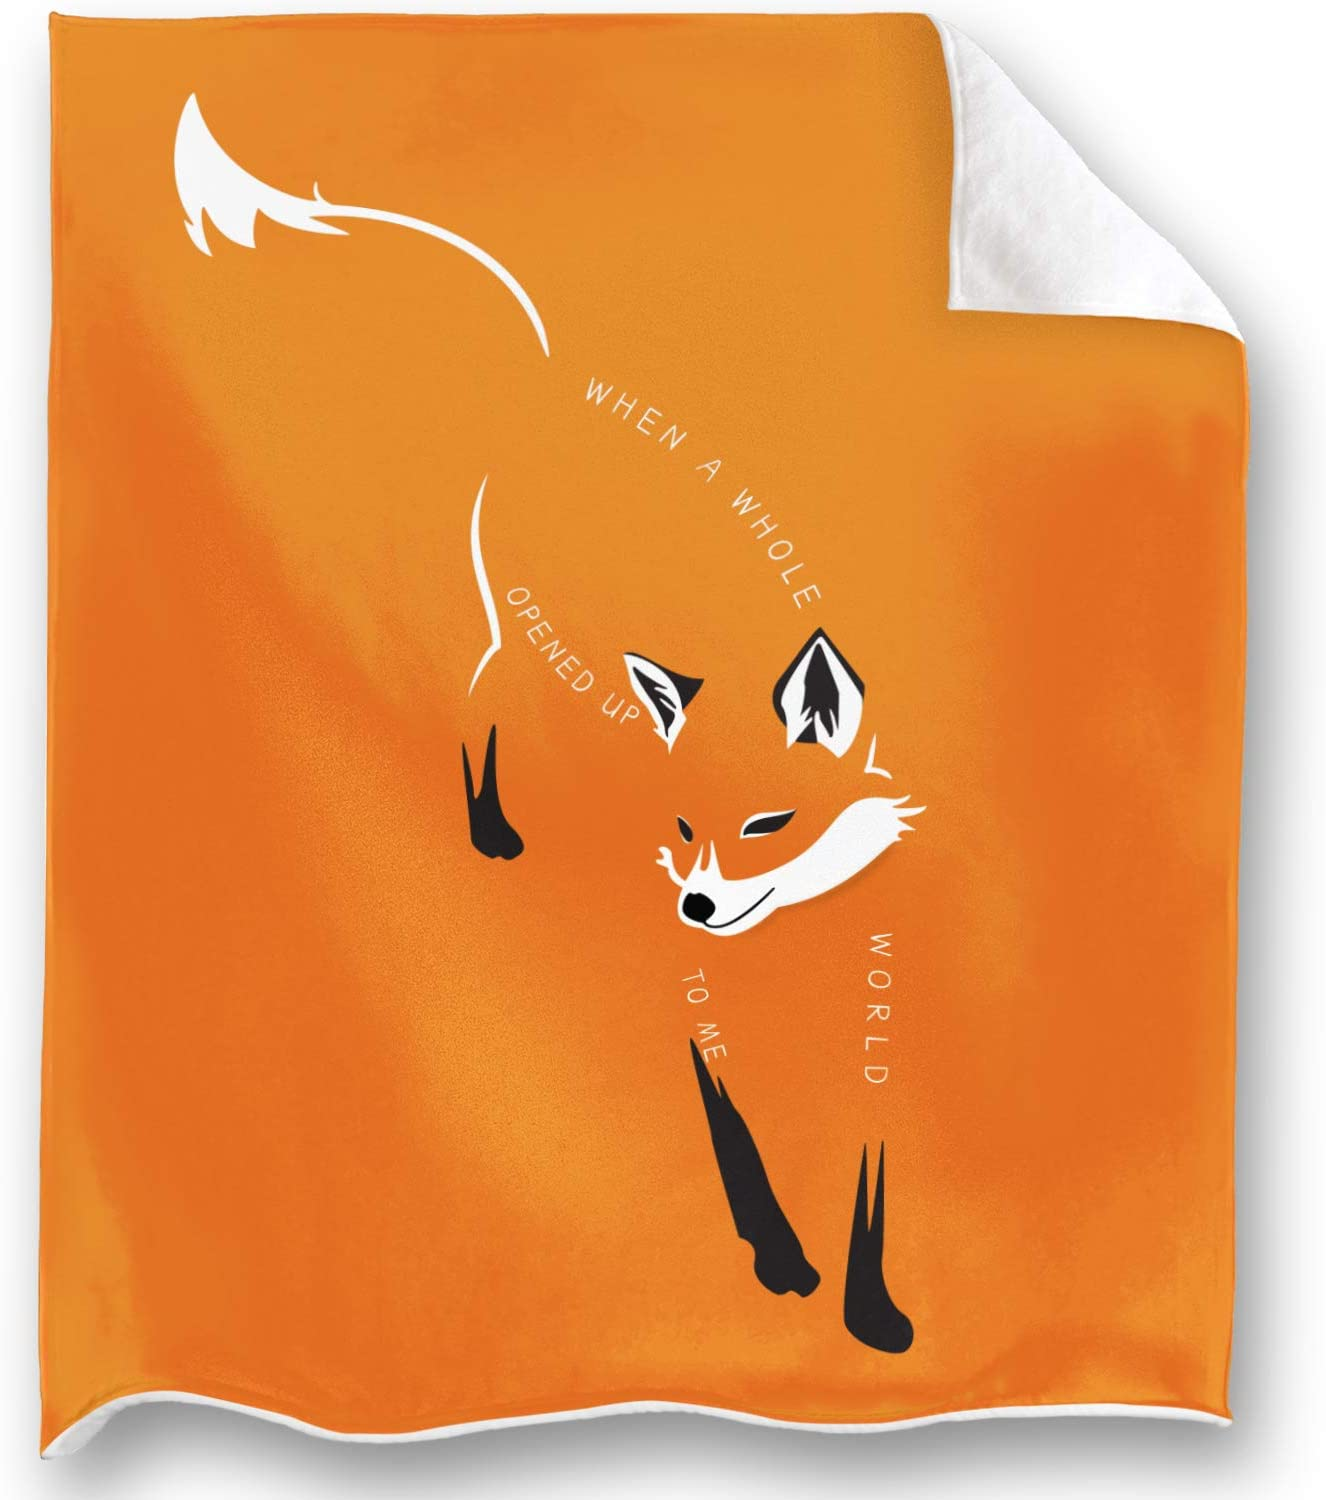 Loong Design Orange Fox Throw Blanket Super Soft, Fluffy, Premium Sherpa Fleece Blanket 50'' x 60'' Fit for Sofa Chair Bed Office Travelling Camping Gift